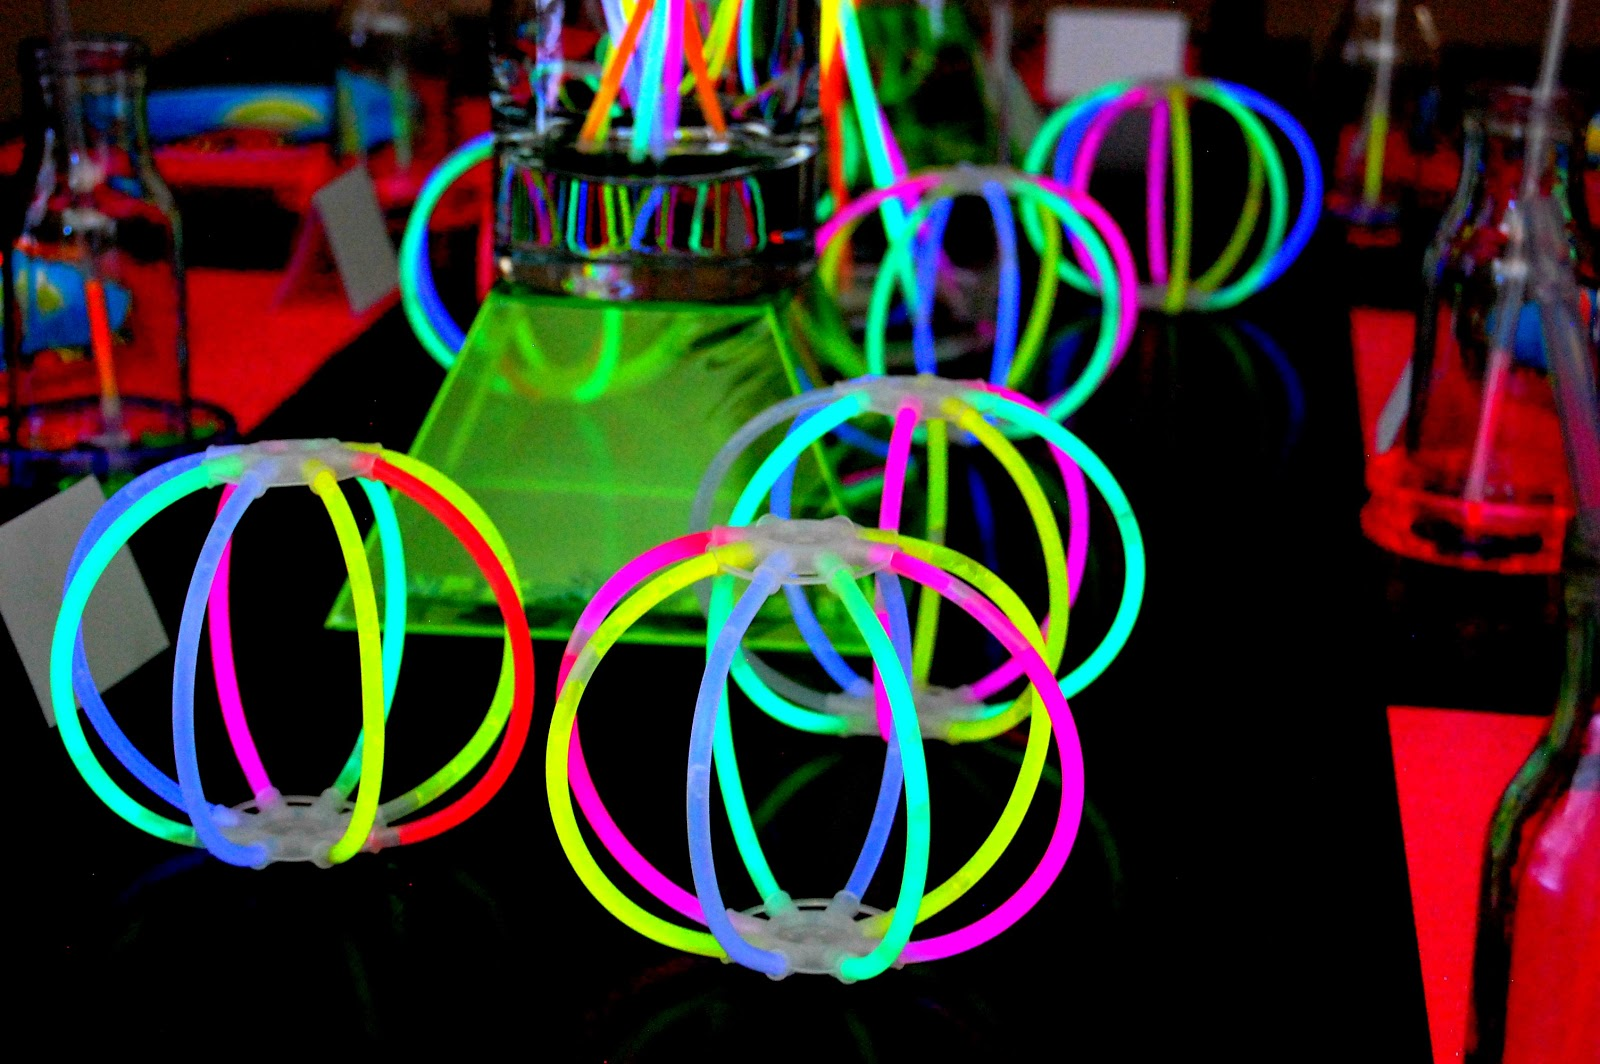 simply creative insanity: totally cool..neon glow party